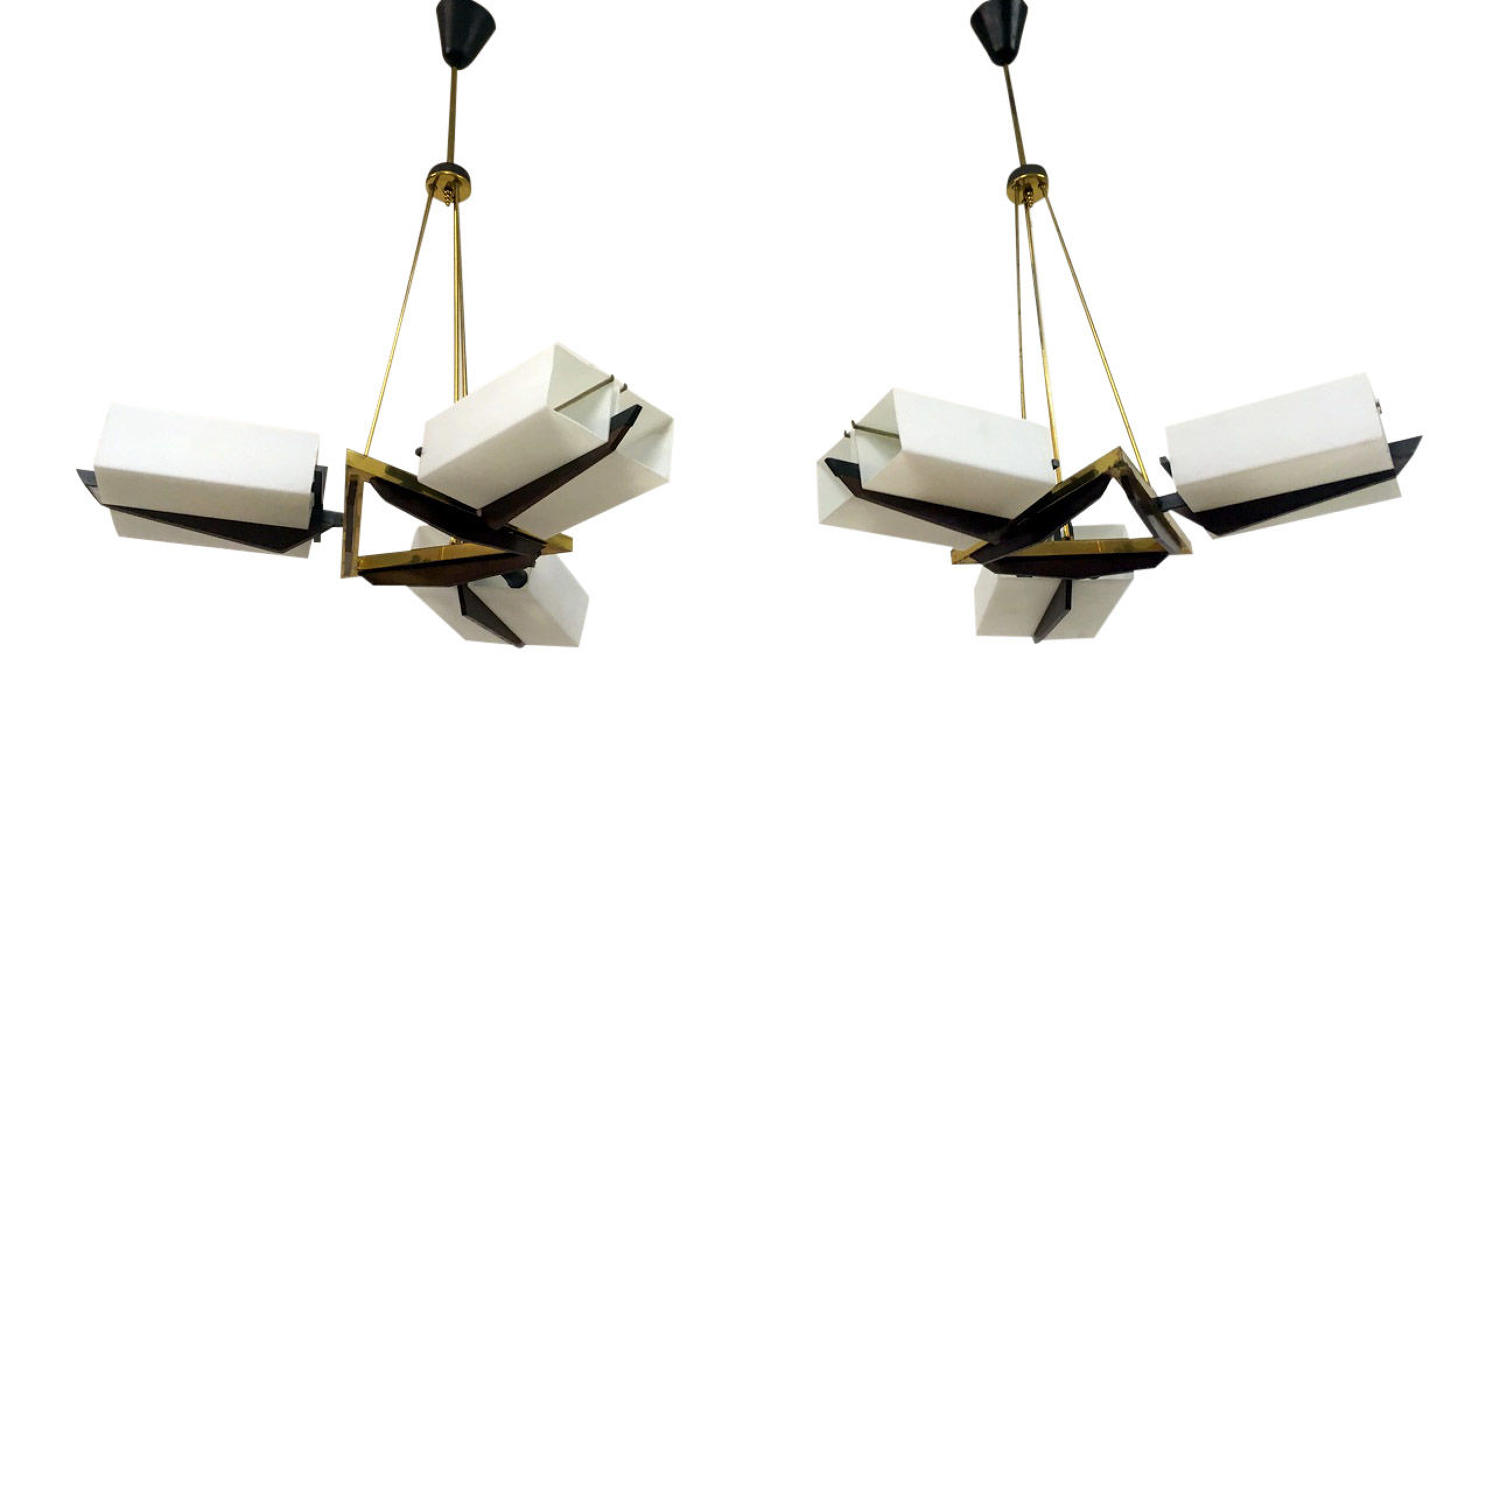 A pair of 1960s Italian pendants by Stilux